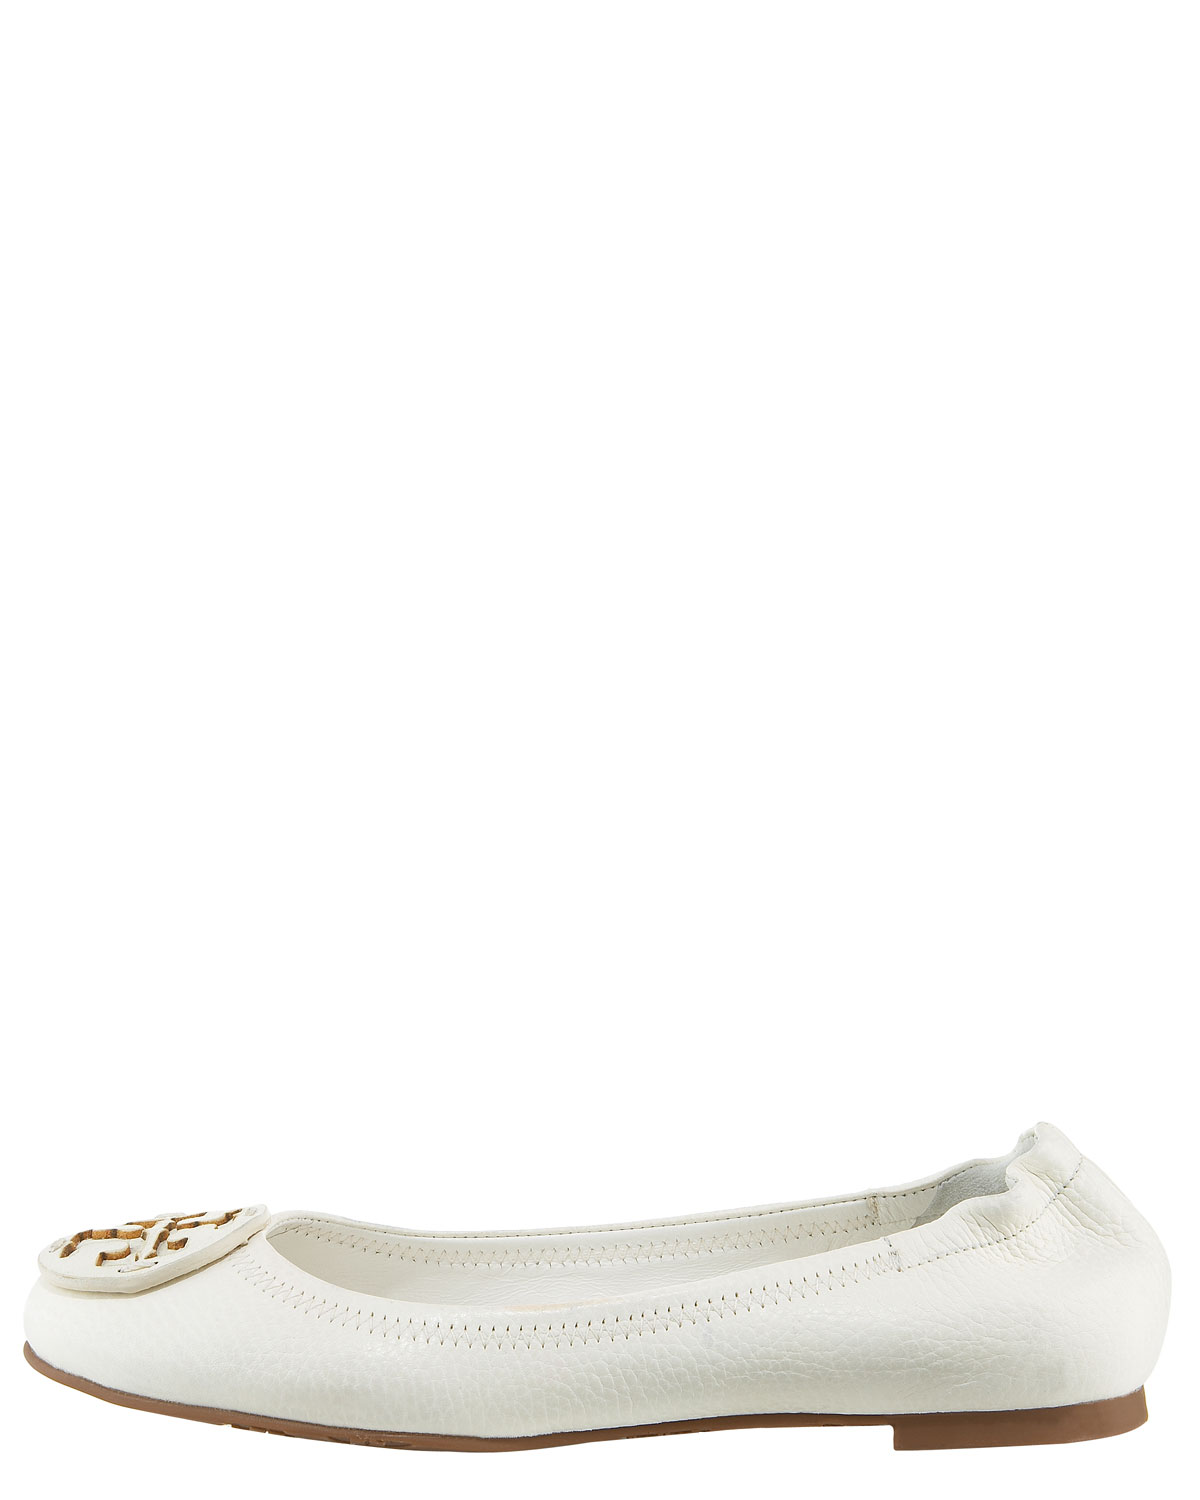 cd5ec0d8102 ... discount code for tory burch reva bleach leather ballet flat in white  lyst cc2ba e6cd9 ...